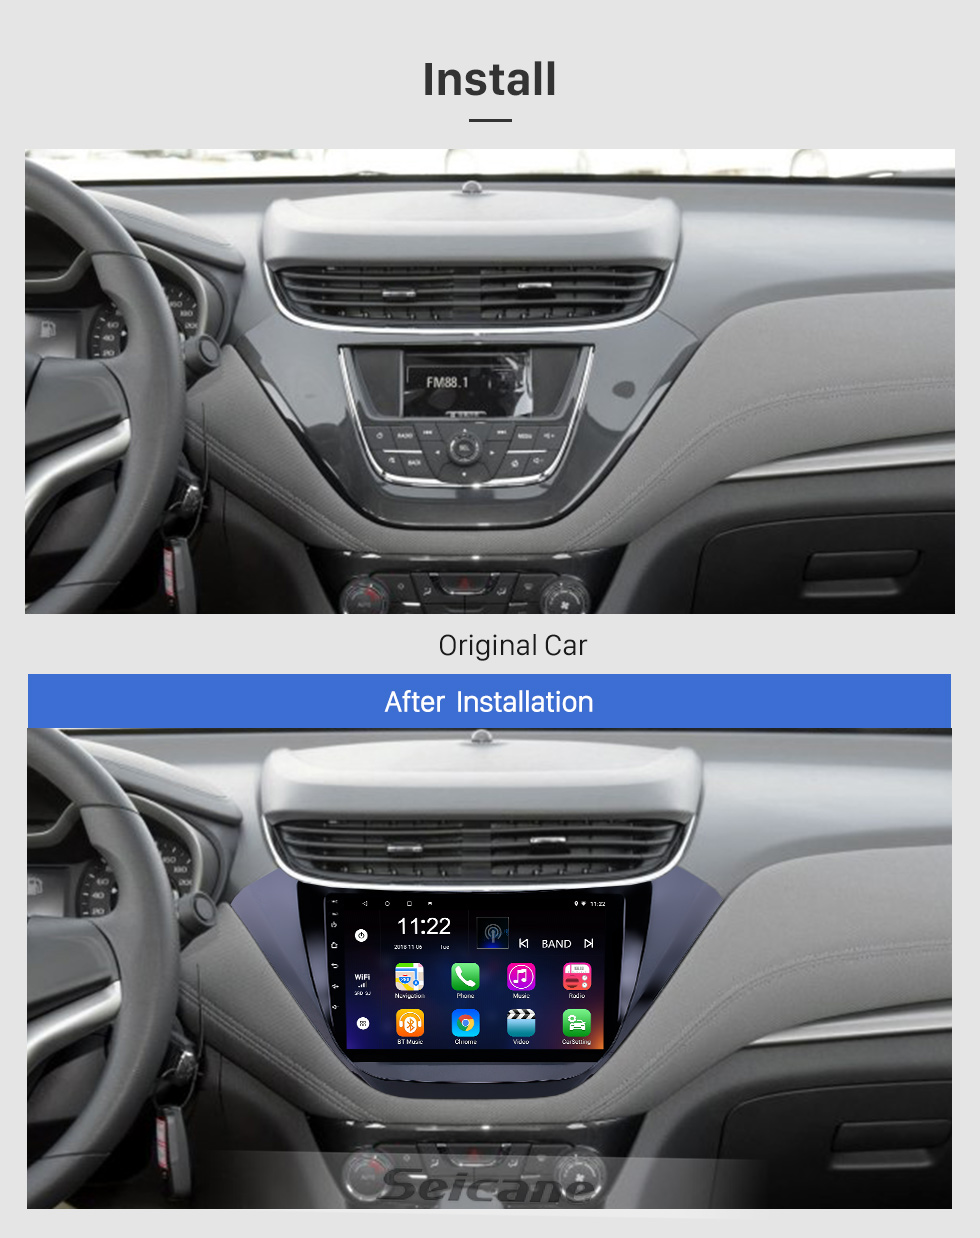 Seicane Android 9.0 9 inch Touchscreen GPS Navigation Radio for 2015-2016 Chevrolet malibu with Bluetooth USB WIFI support Carplay SWC Rear camera